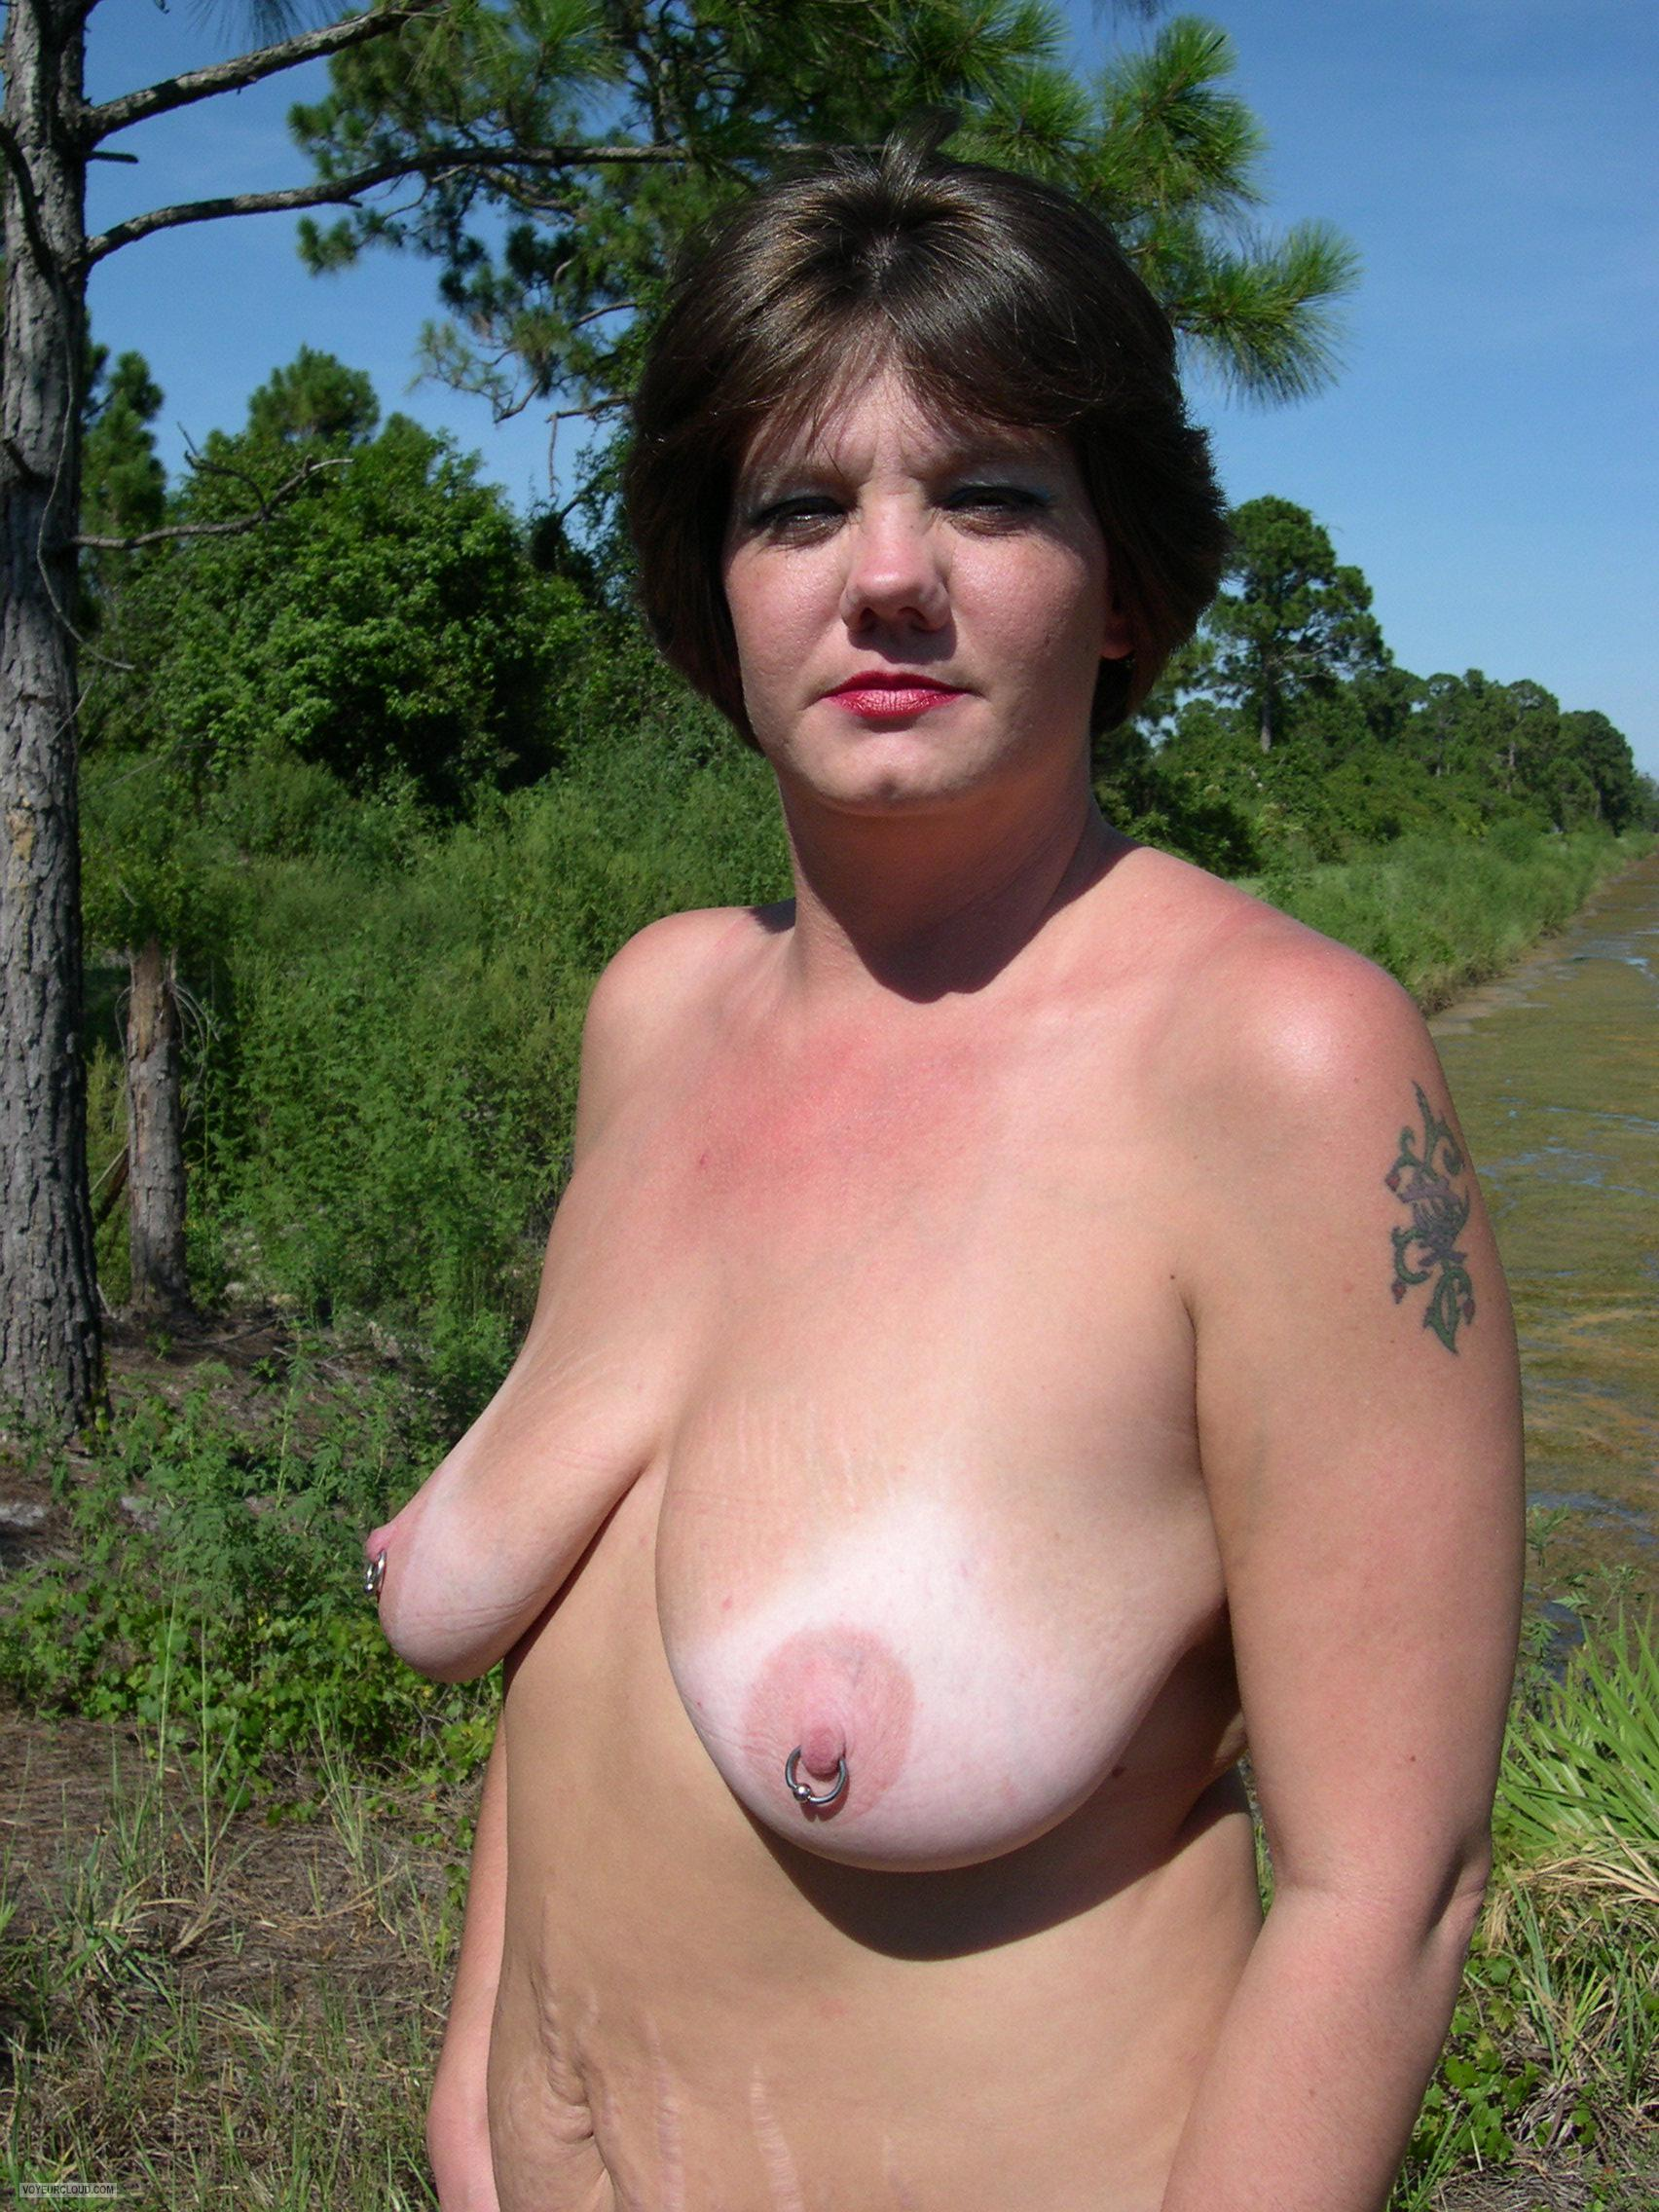 Huge nips big tits agree